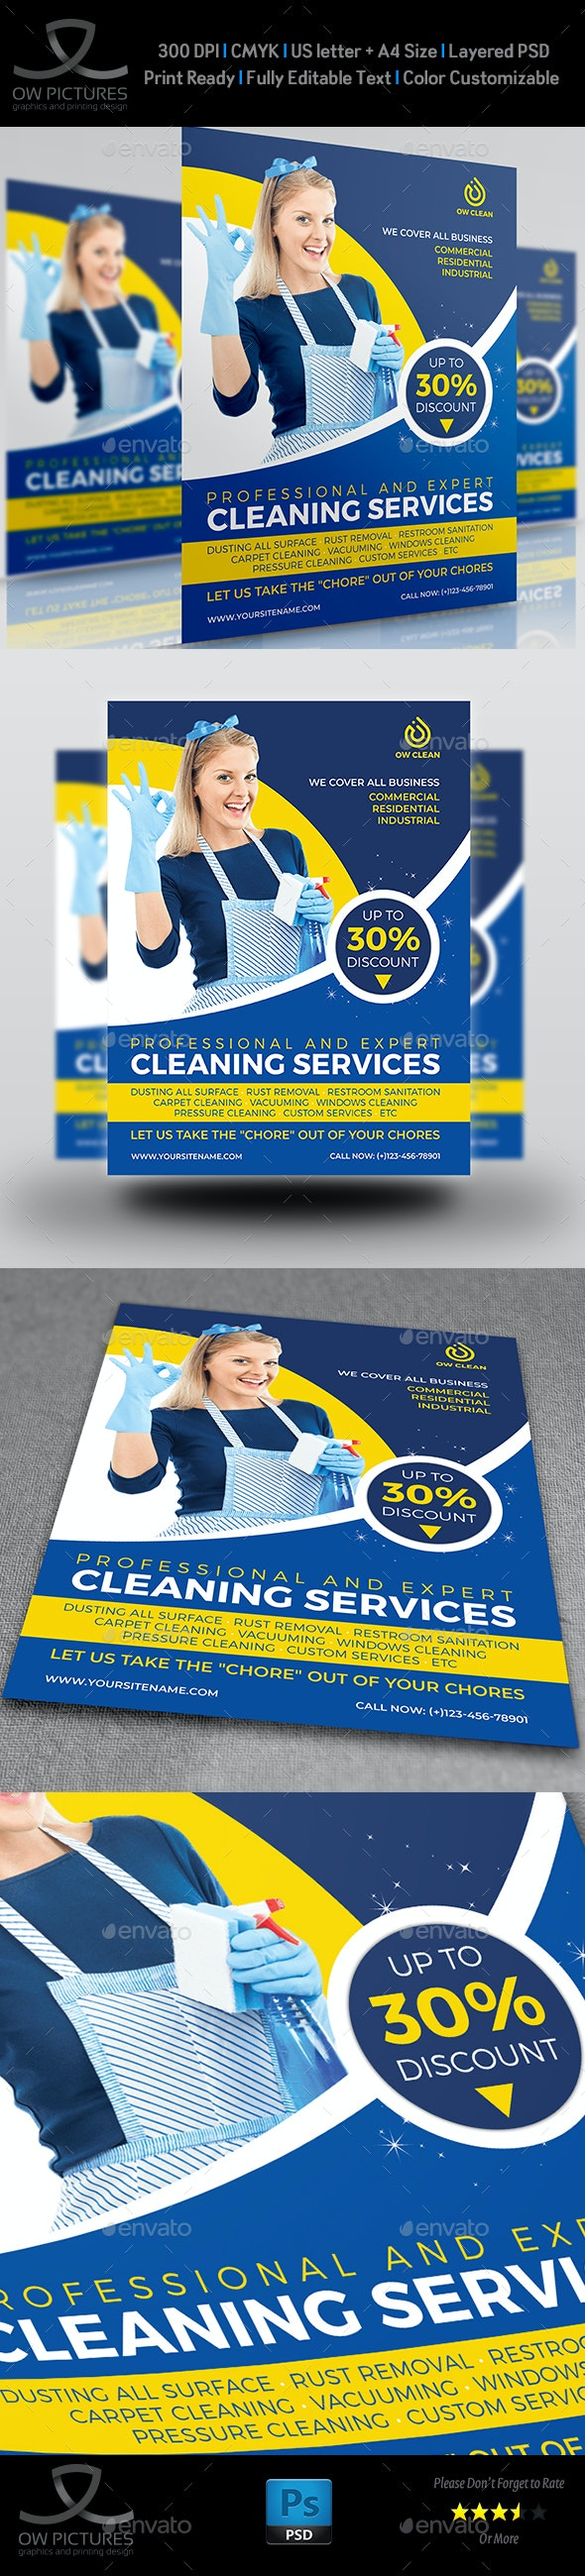 Cleaning Services Flyer Template Vol.5 - Flyers Print Templates